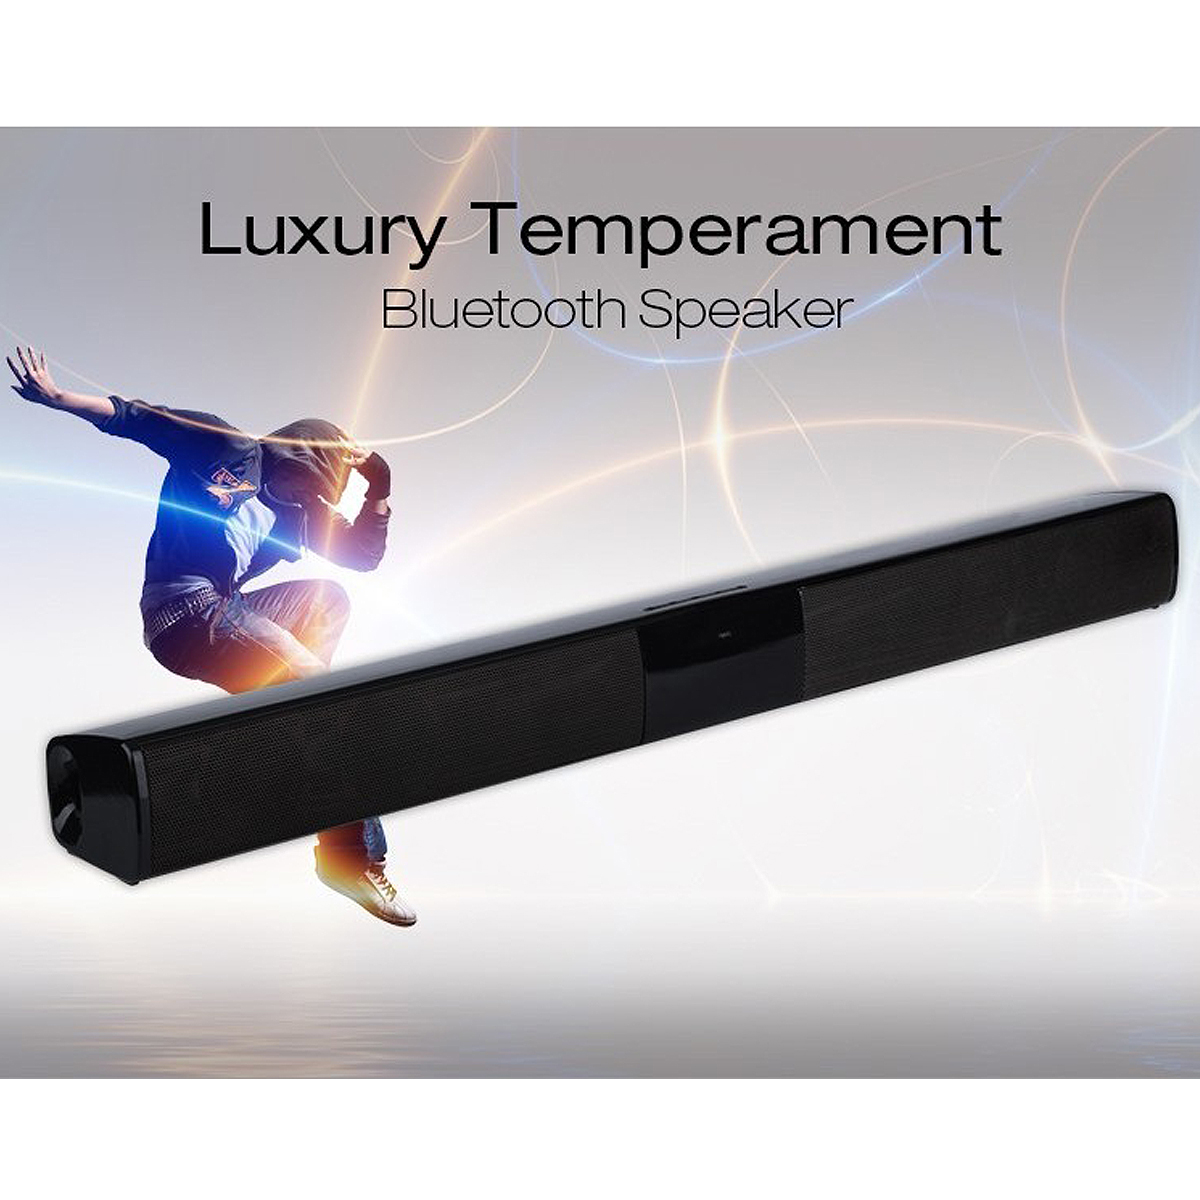 Wireless Bluetooth Soundbar TV Stereo Speaker Subwoofer Sound Bar Home Theater Home Audio Speaker